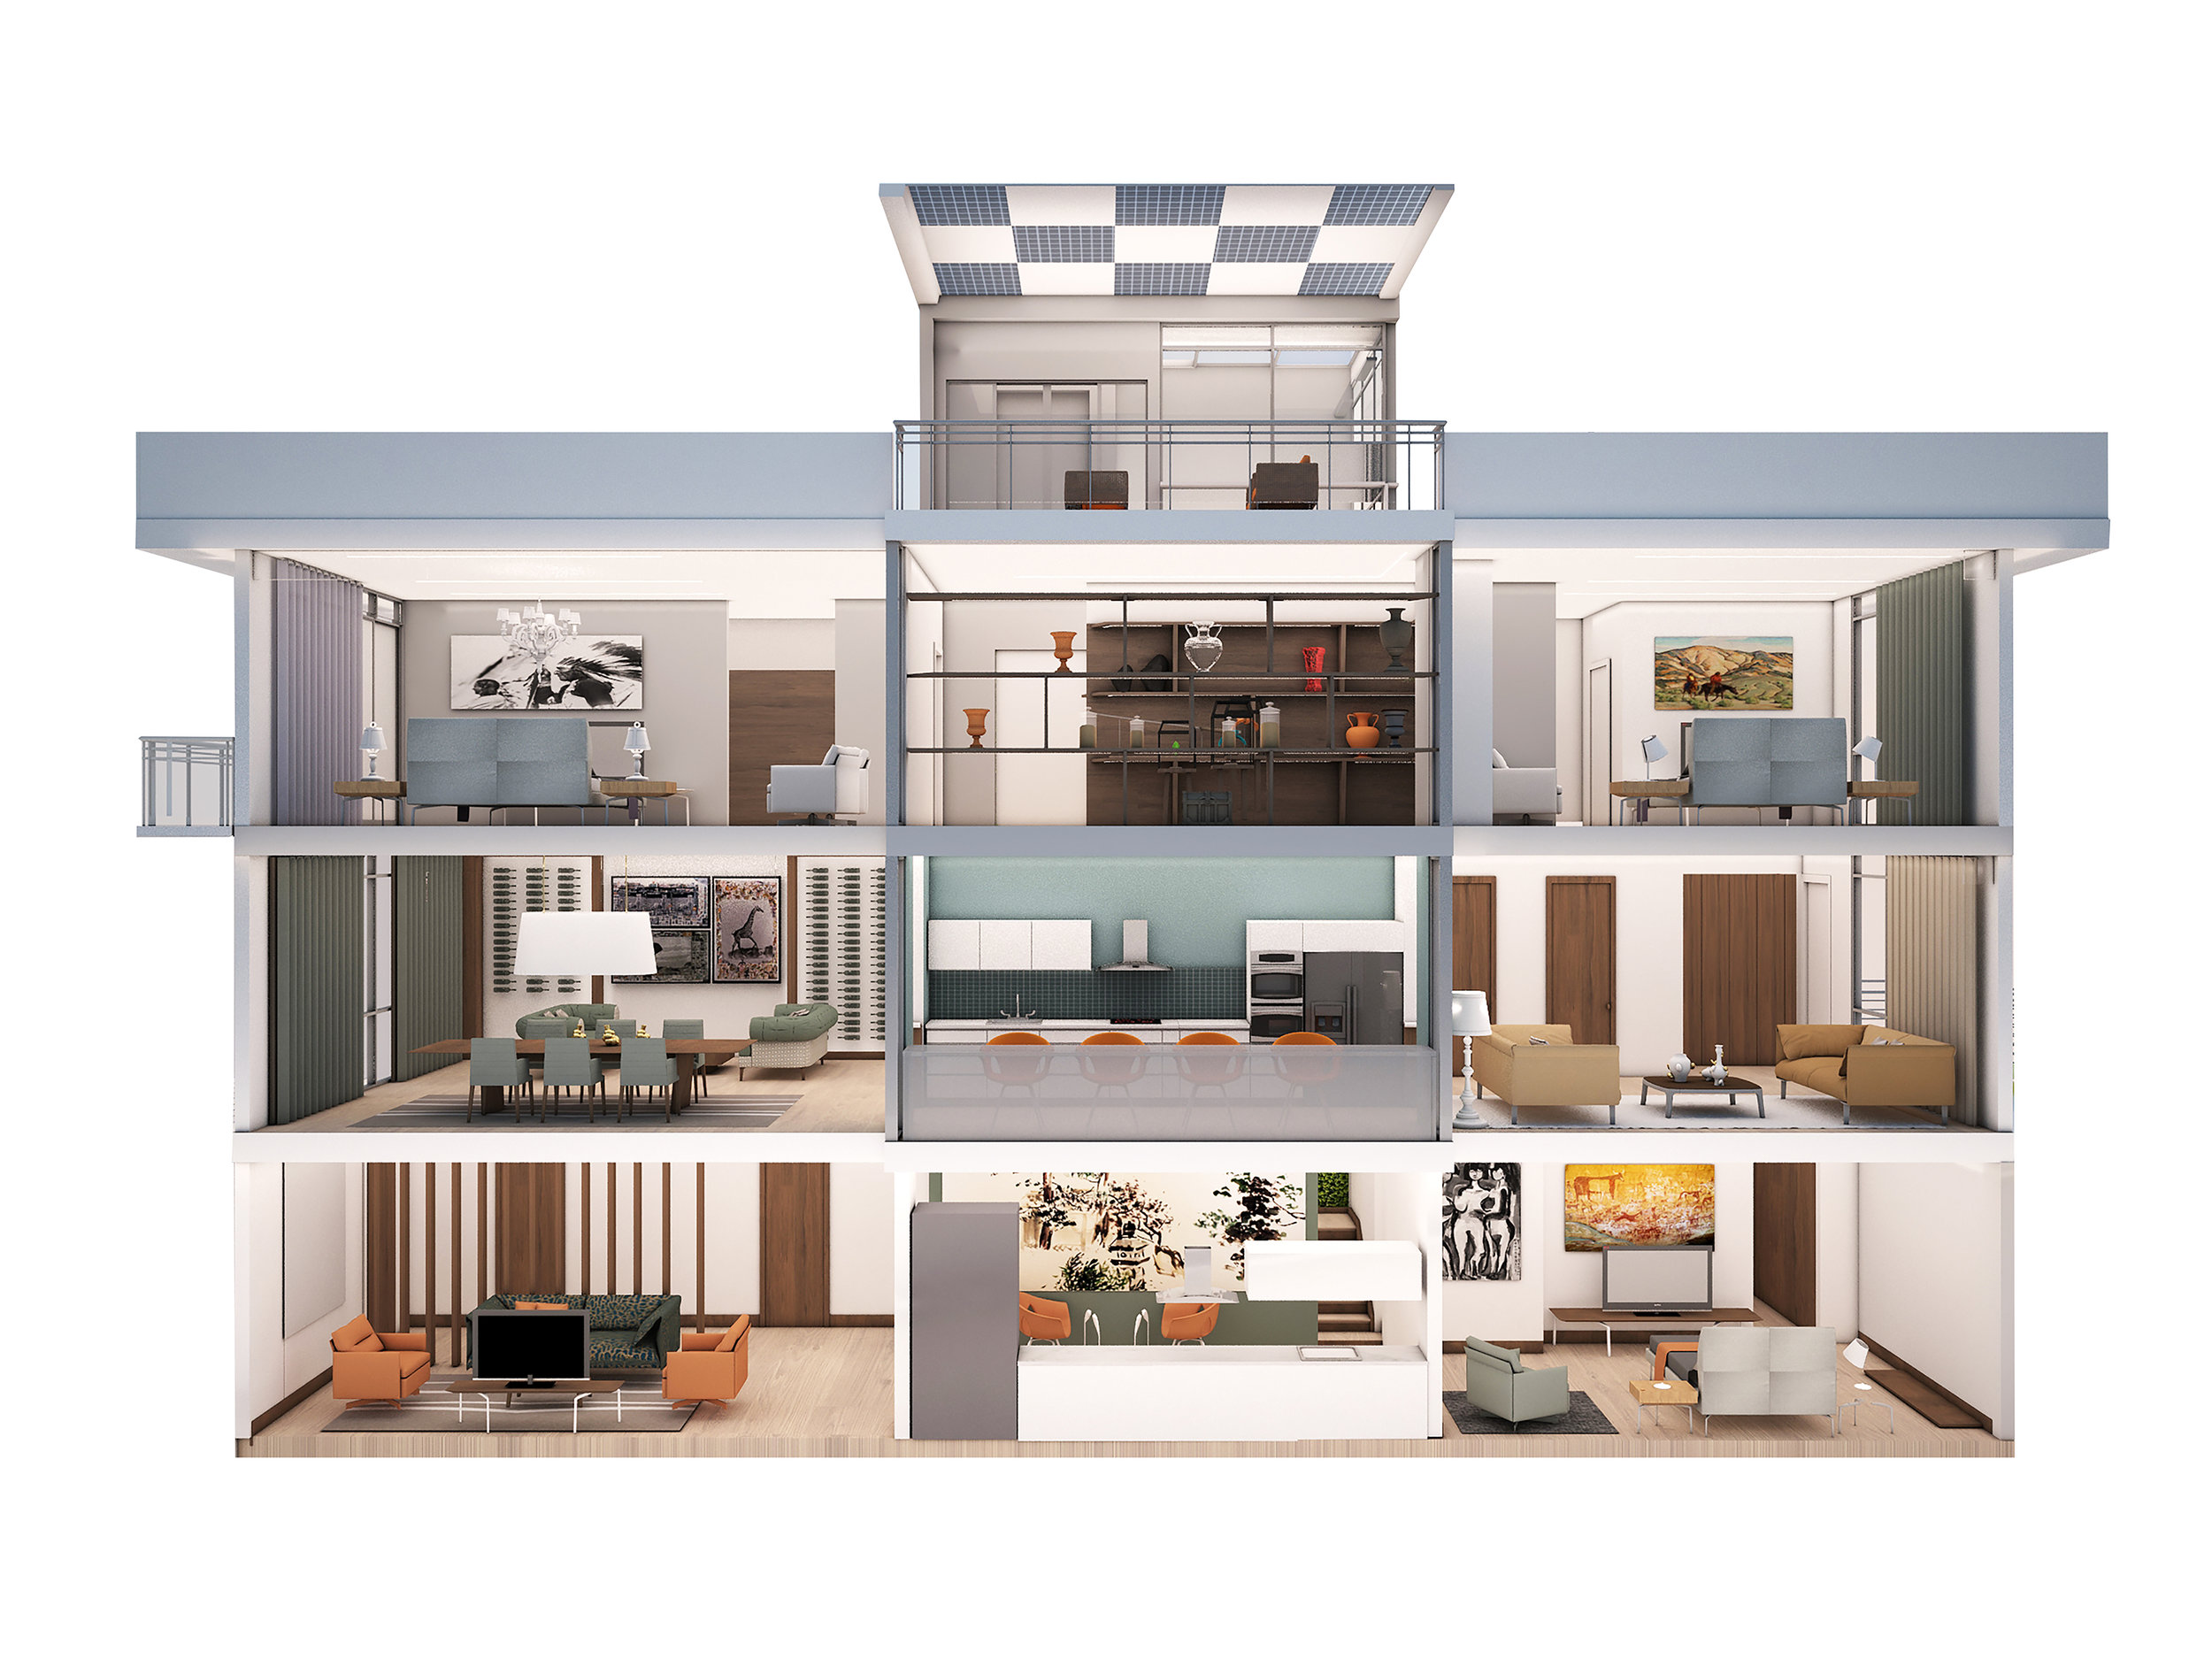 silvia-landinez-sneha-kodi-nadya-chairil-assisted-living-suburban-townhouse-mps-sustainable-interior-environments-residential-project_17456960629_o.jpg